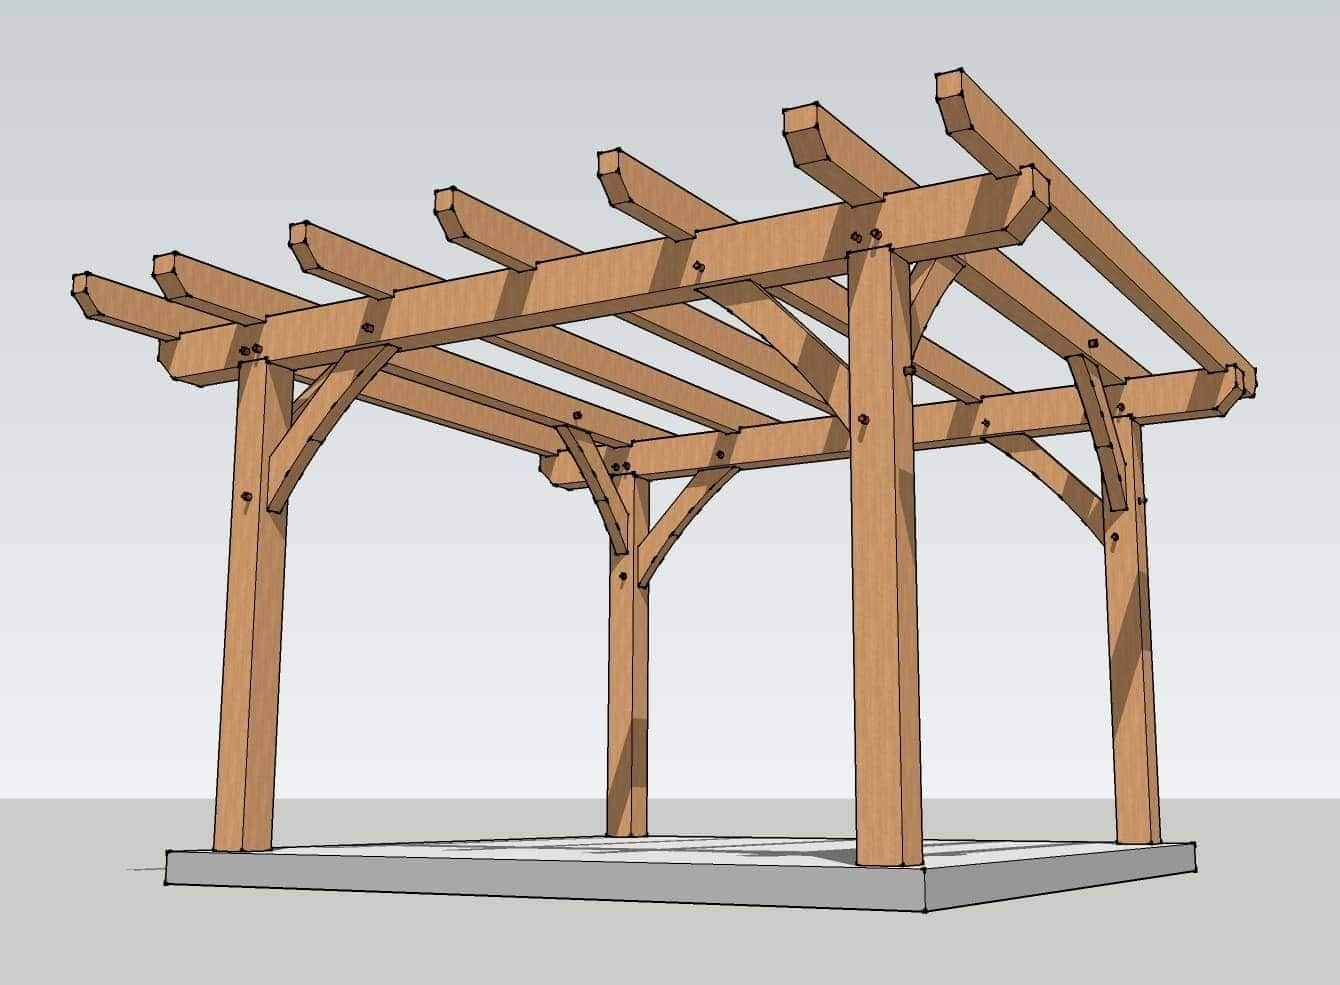 12x12 timber frame pergola plan timber frame hq for Timber frame designs